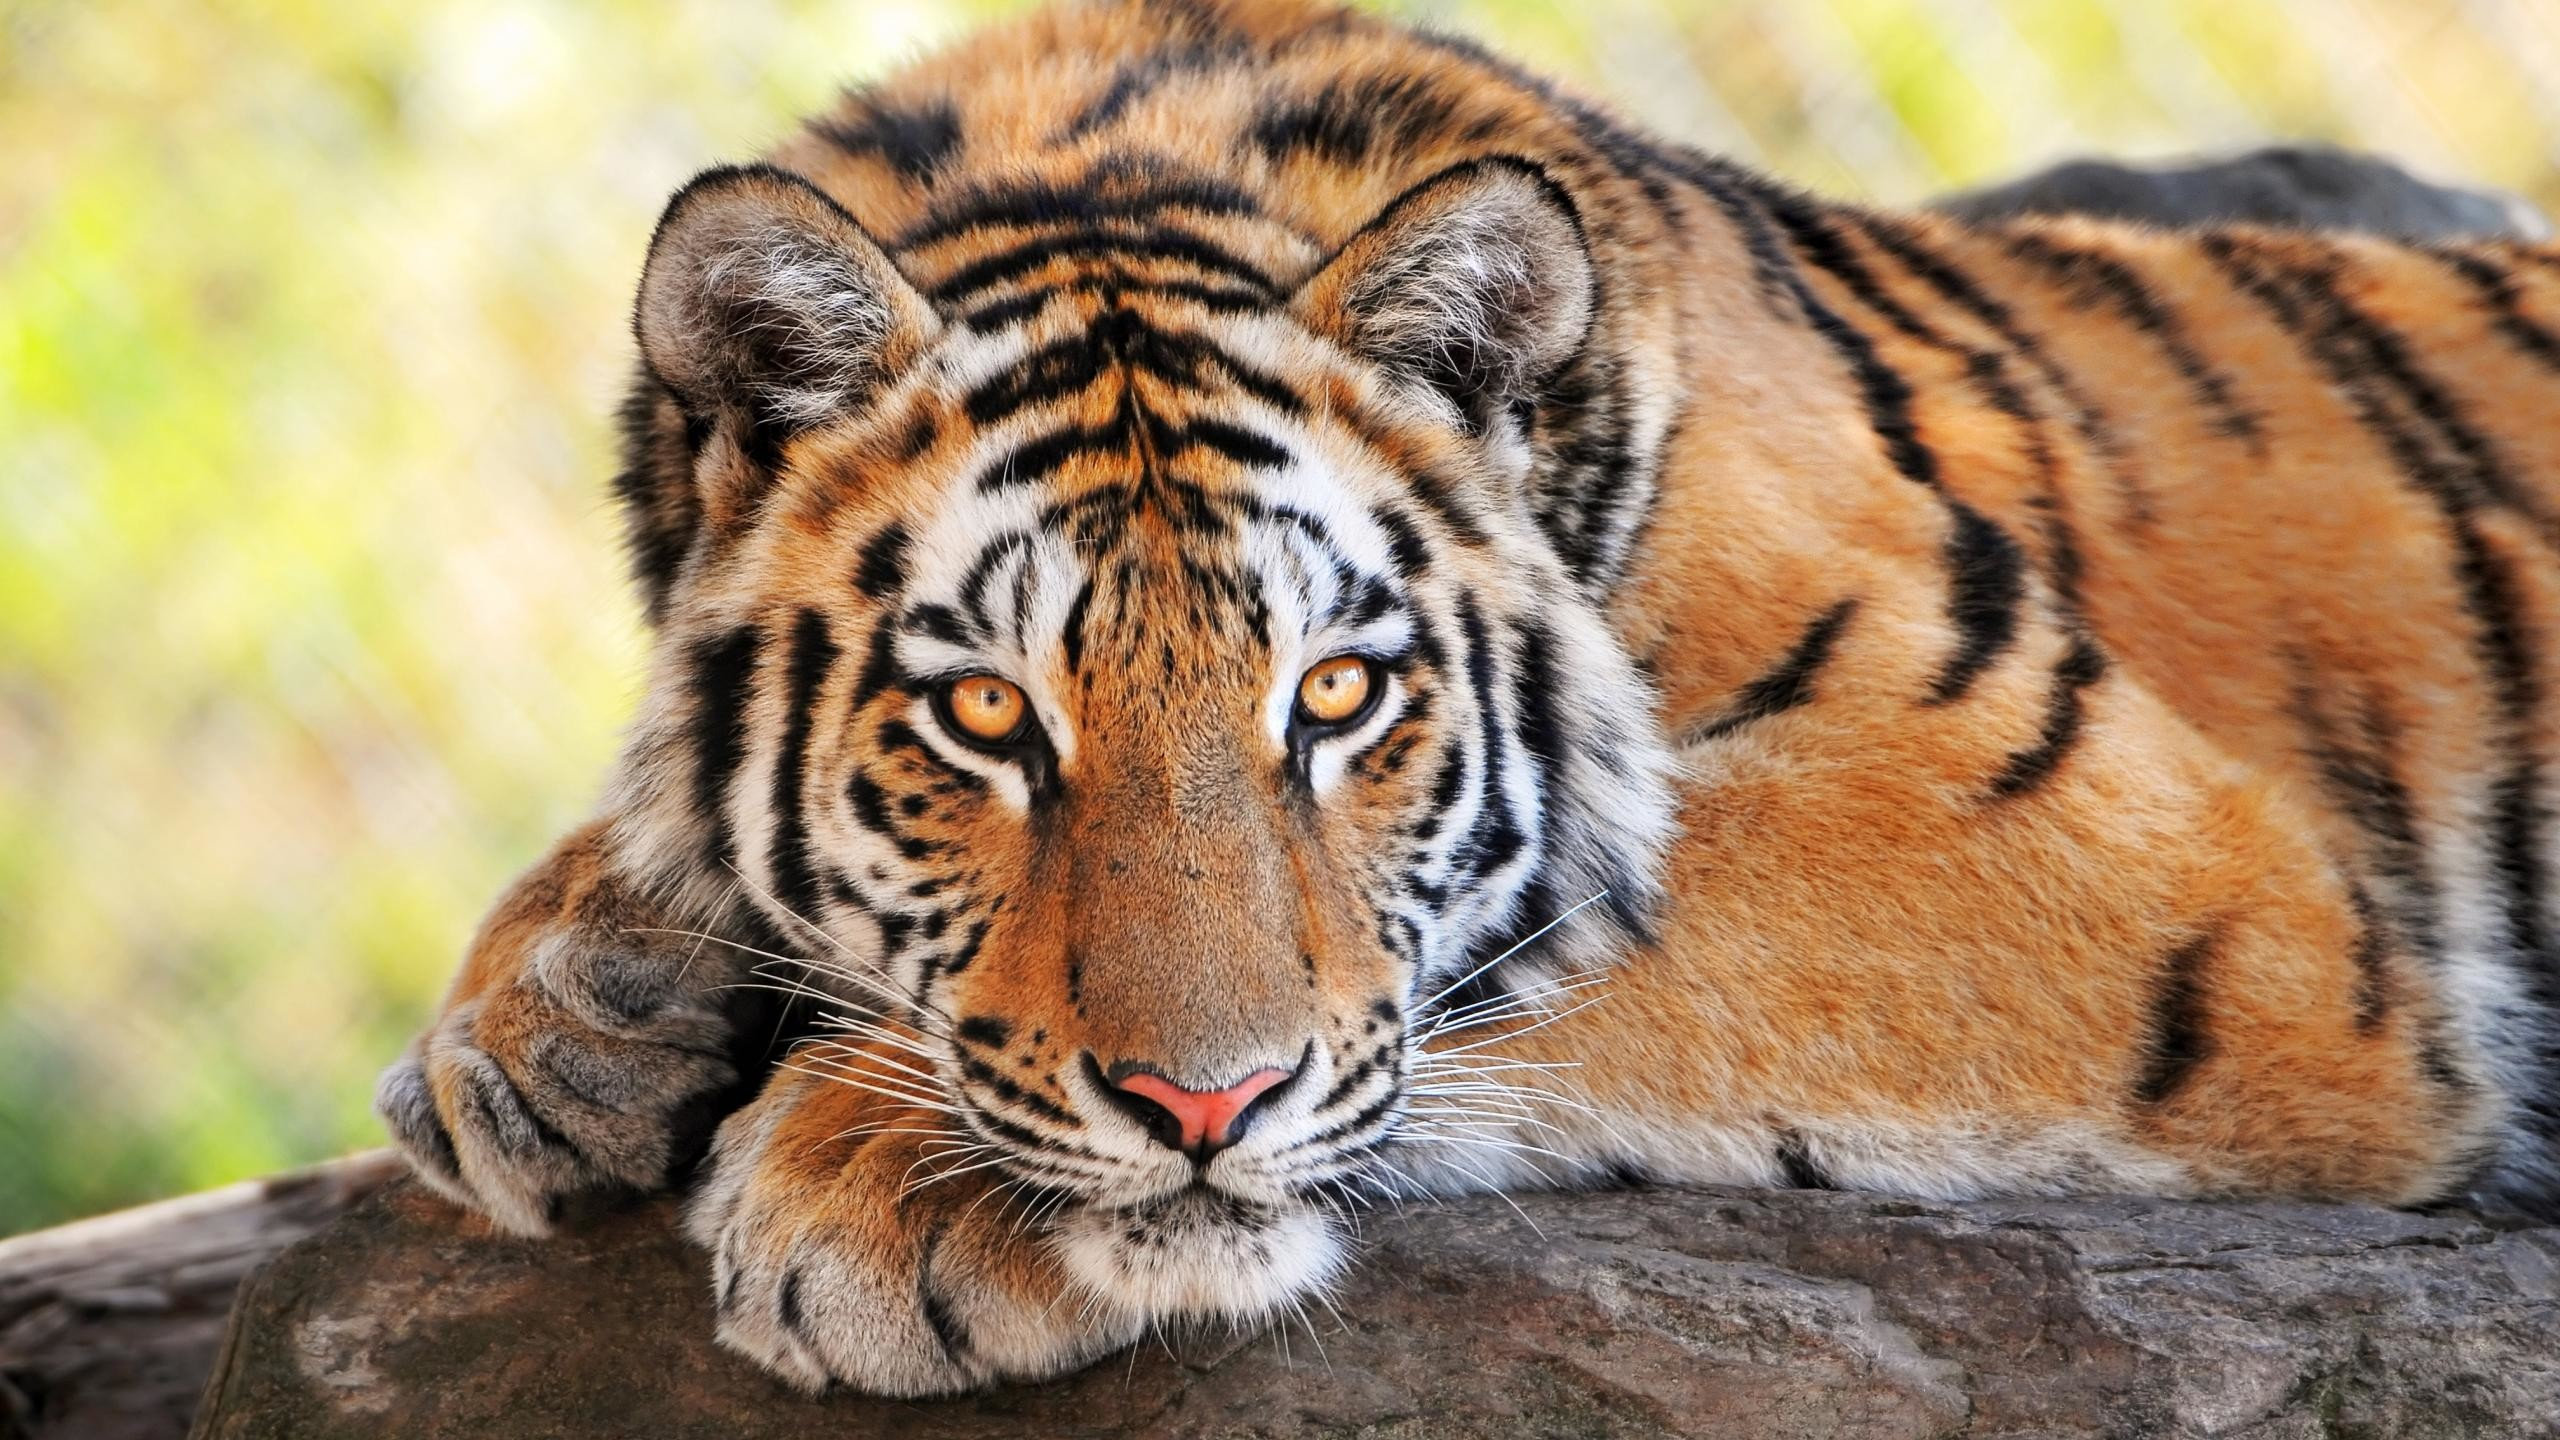 big cat wallpapers (56+ images)